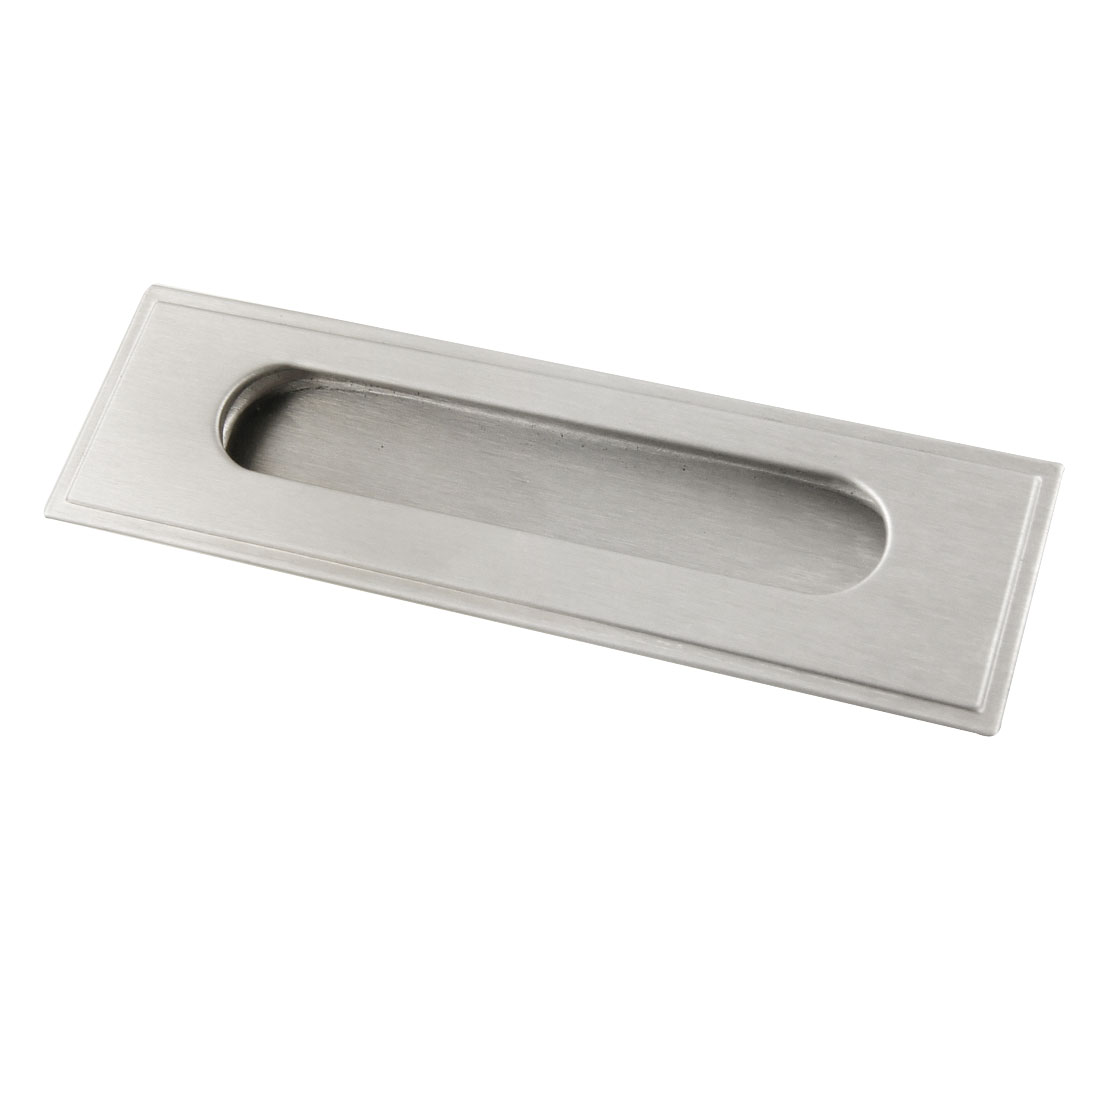 "Rectangle Door Cabinet Drawer Flush Pull Handle Silver Tone 5.5"" Length"